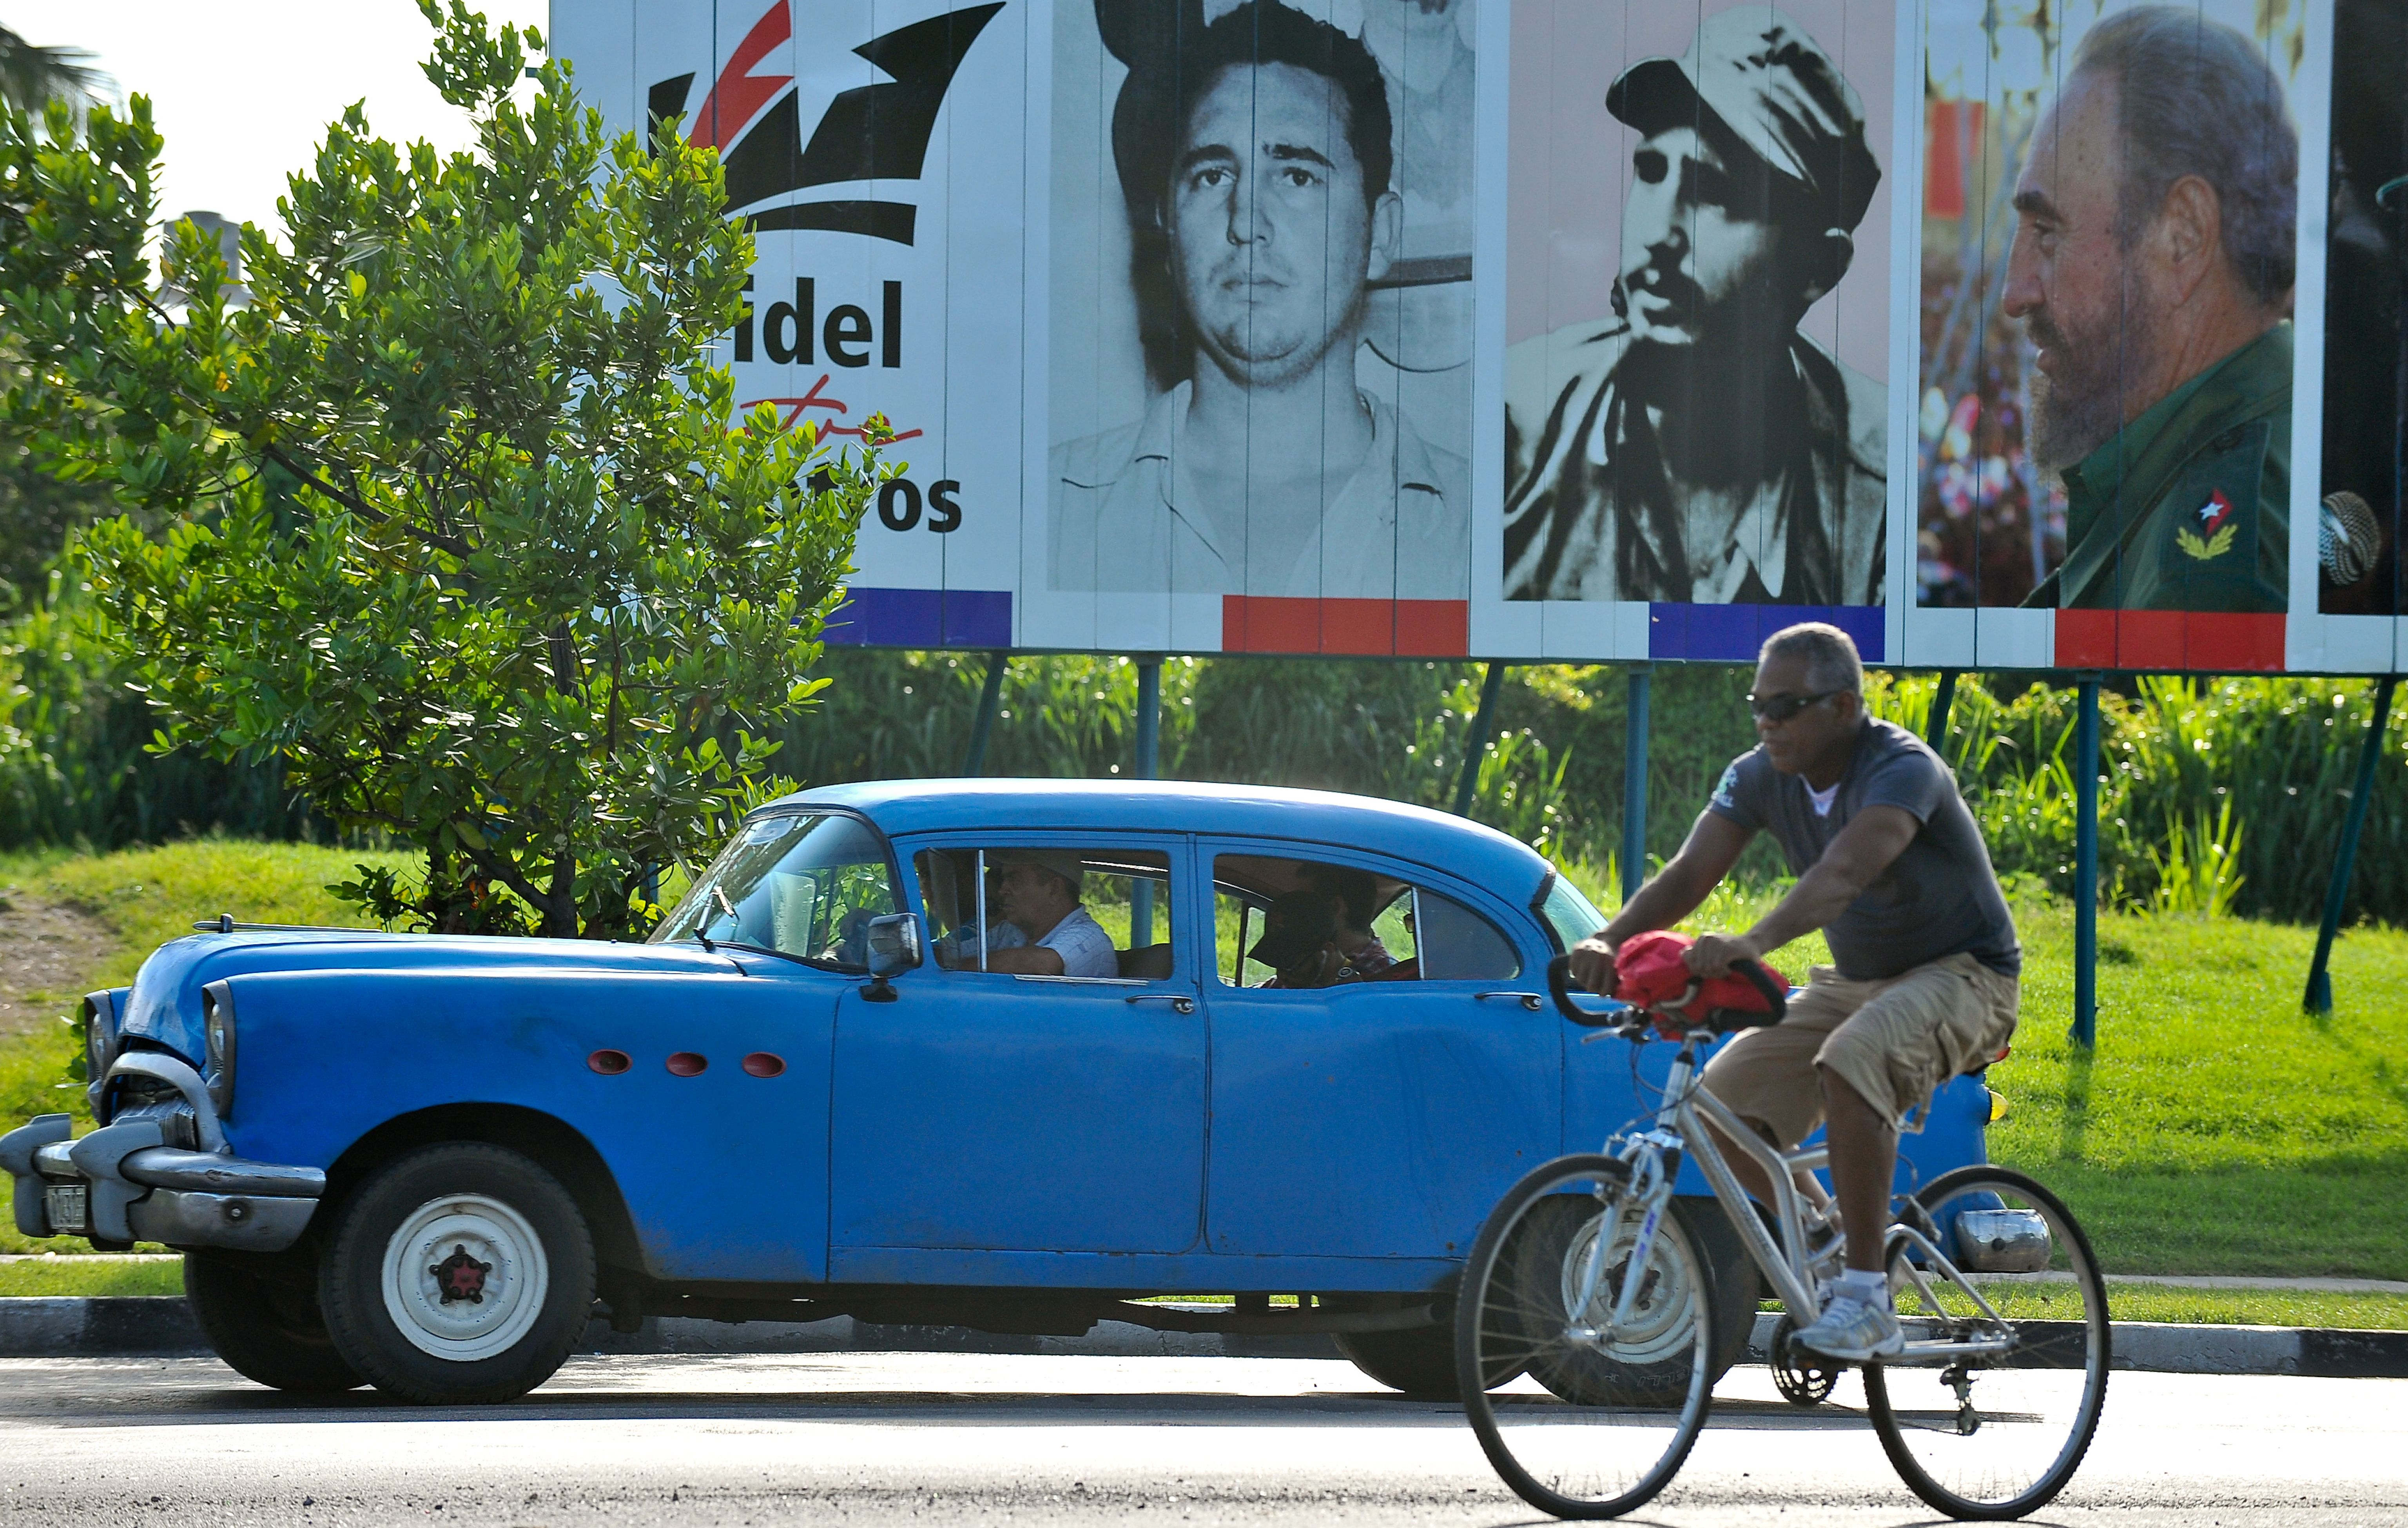 An old American car drives past a billboard of Cuban former President Fidel Castro in Havana on August 12, 2016.